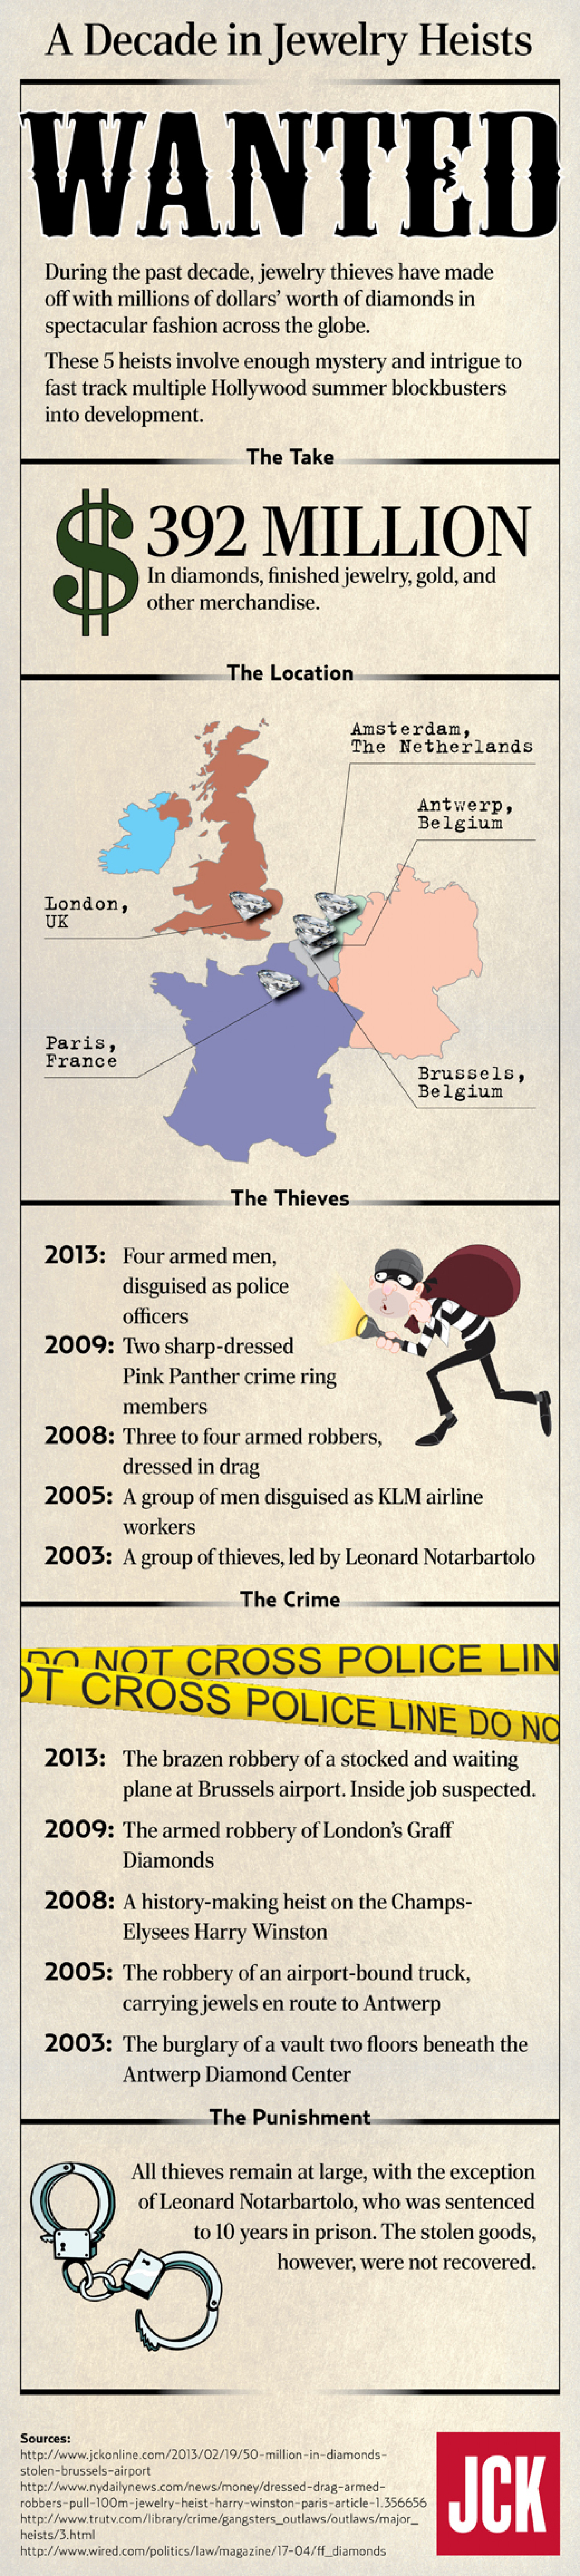 A Decade in Diamond Jewelry Heists Infographic